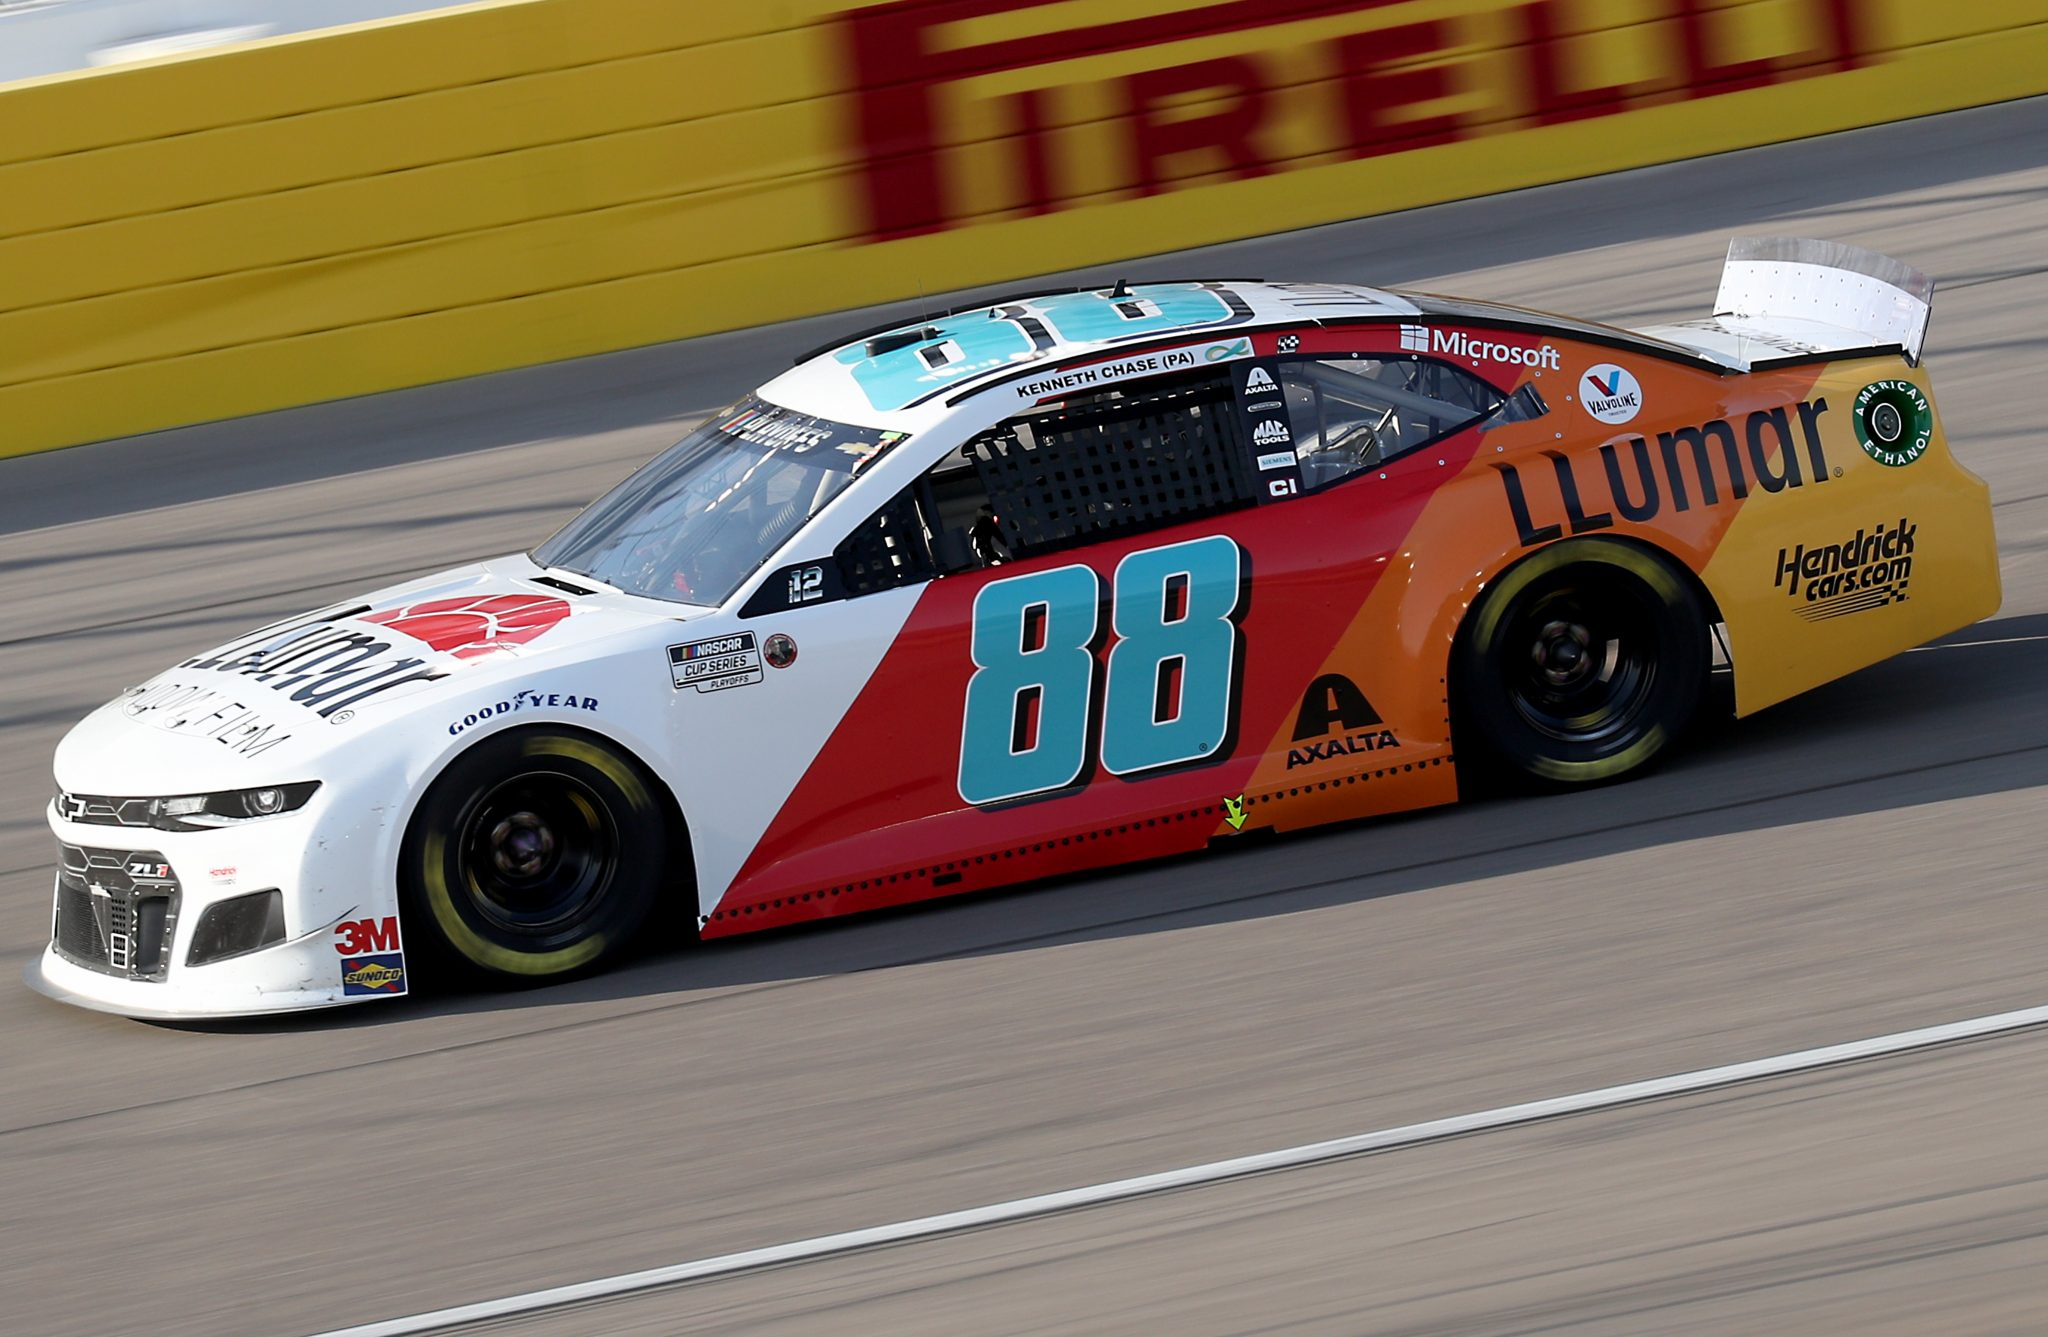 LAS VEGAS, NEVADA - SEPTEMBER 27: Alex Bowman, driver of the #88 LLUMAR Chevrolet, drives during the NASCAR Cup Series South Point 400 at Las Vegas Motor Speedway on September 27, 2020 in Las Vegas, Nevada. (Photo by Chris Graythen/Getty Images) | Getty Images